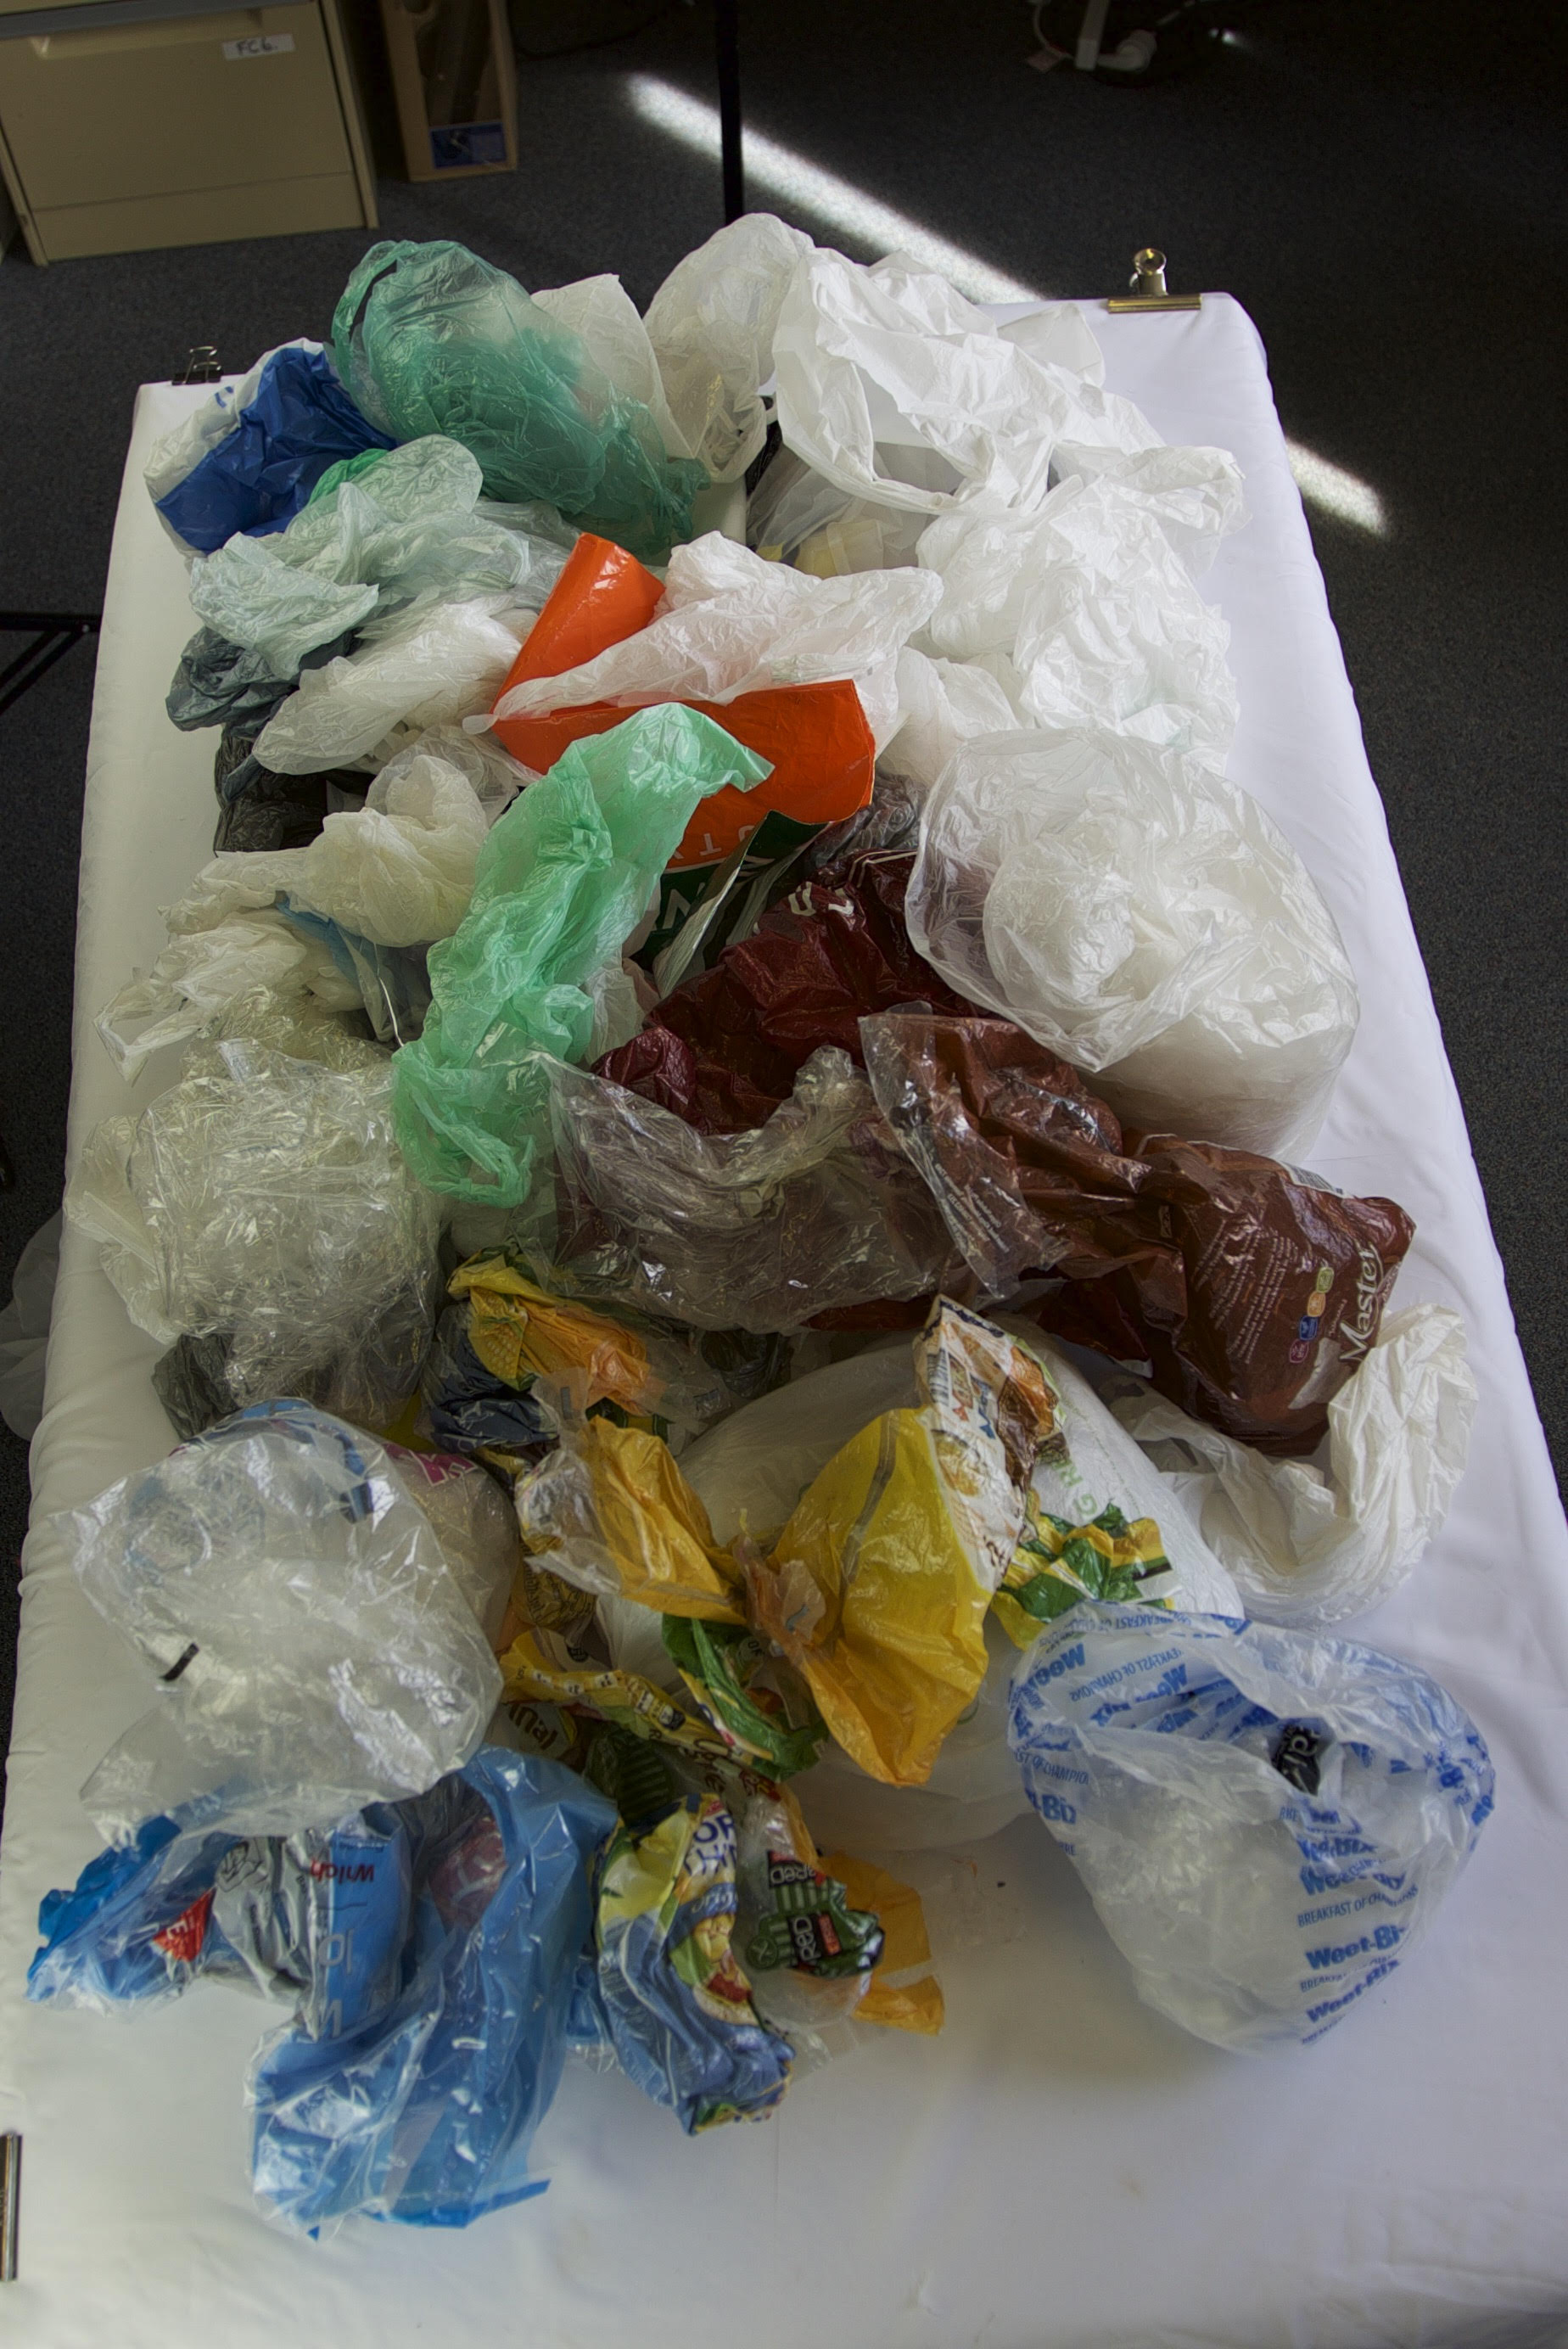 Many plastic bags and films are not recyclable anywhere and knowing which are recyclable is not easy.